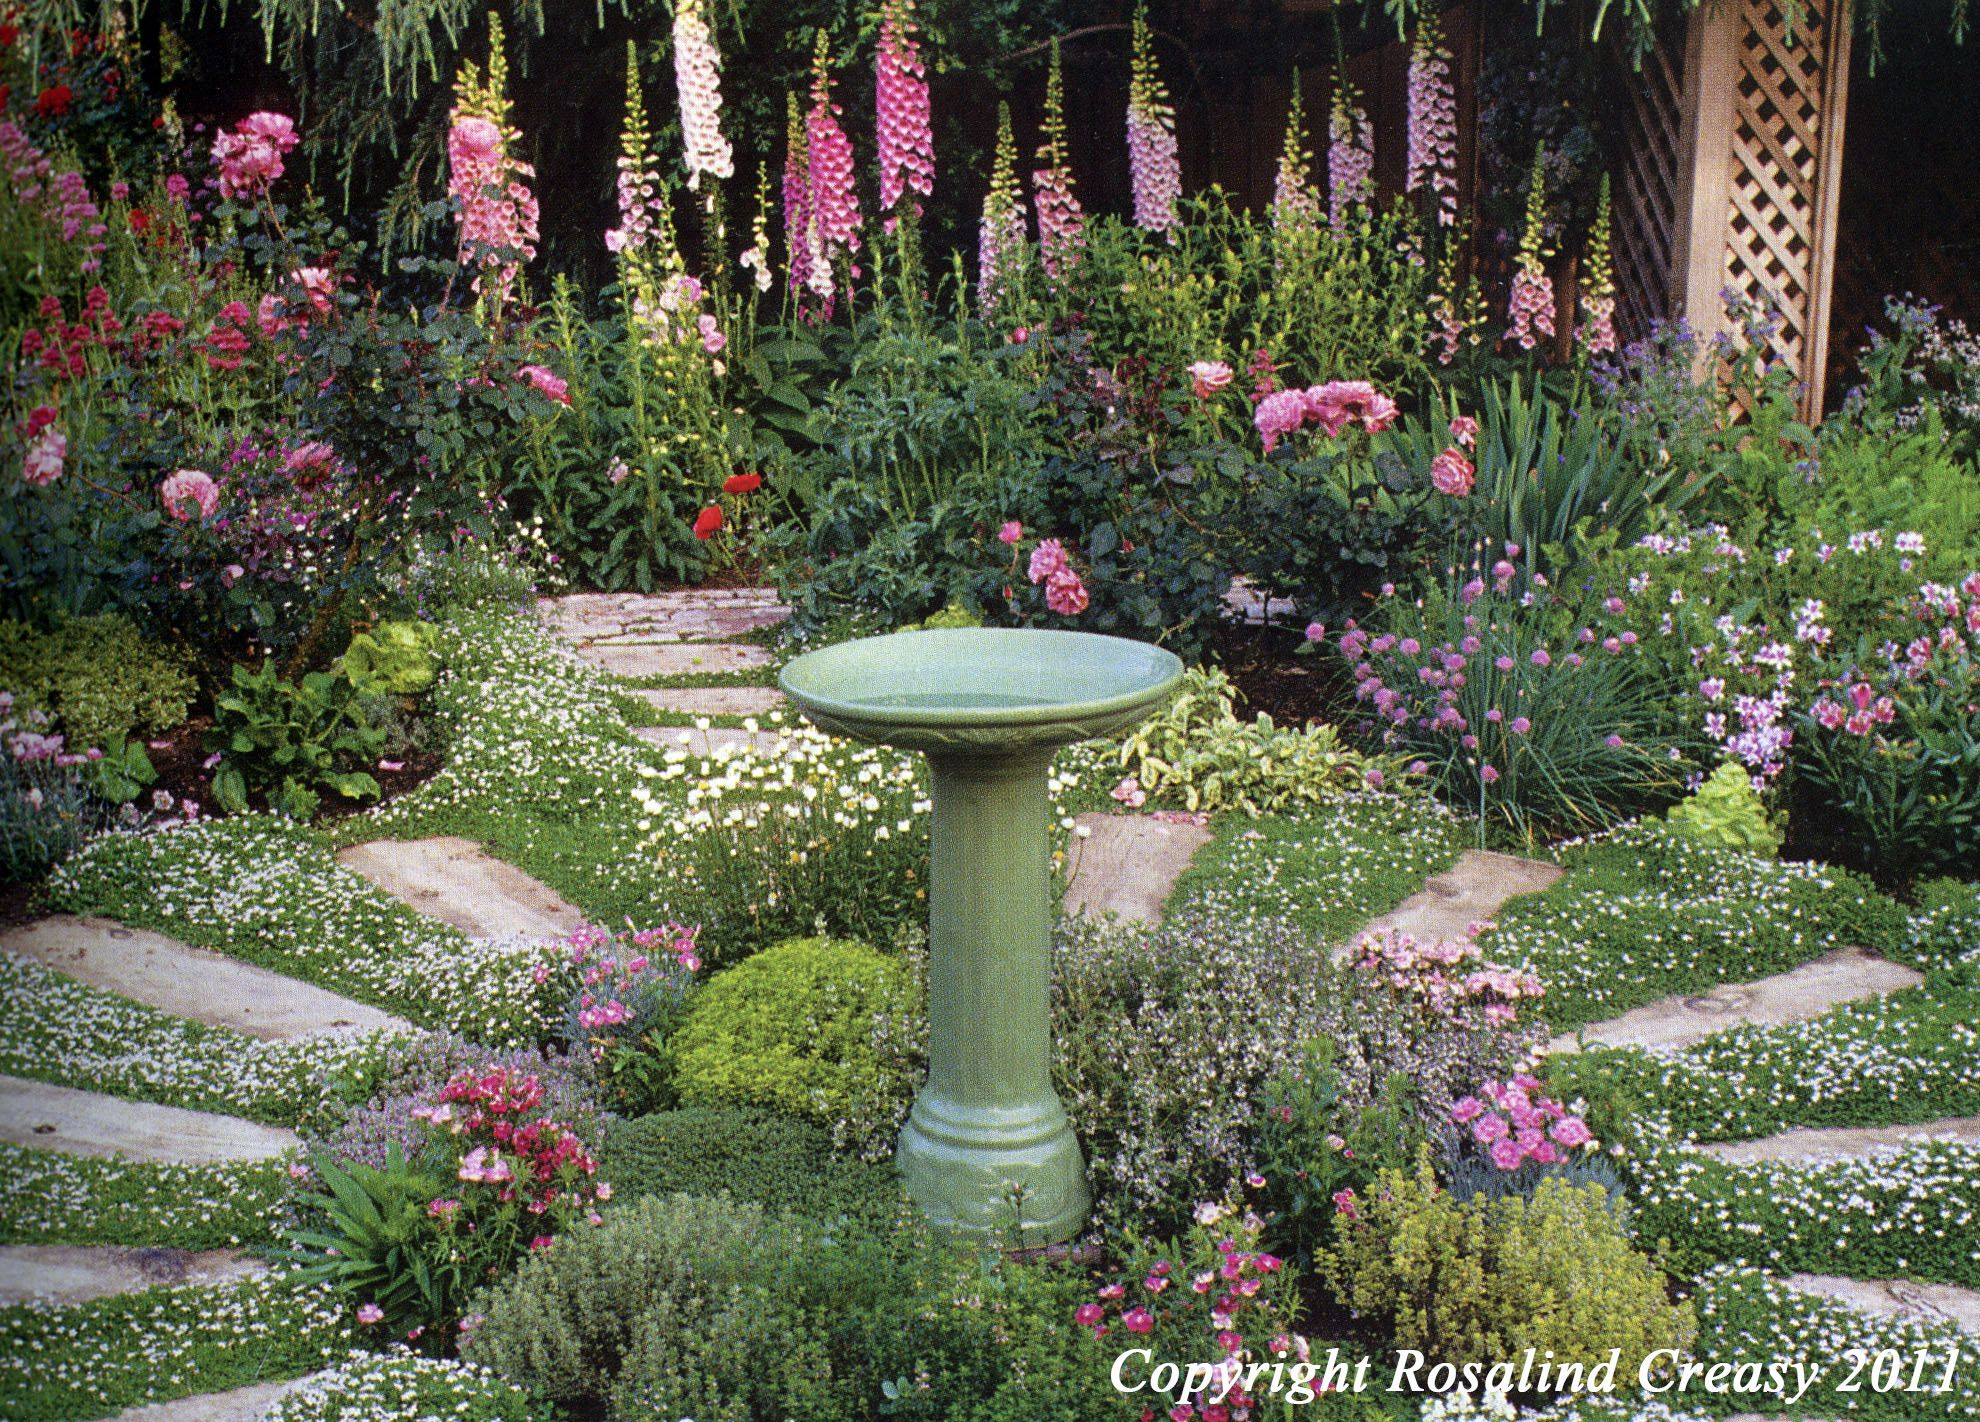 Landscaping With Herbs : Herbs garden flowers paths front gardens edible